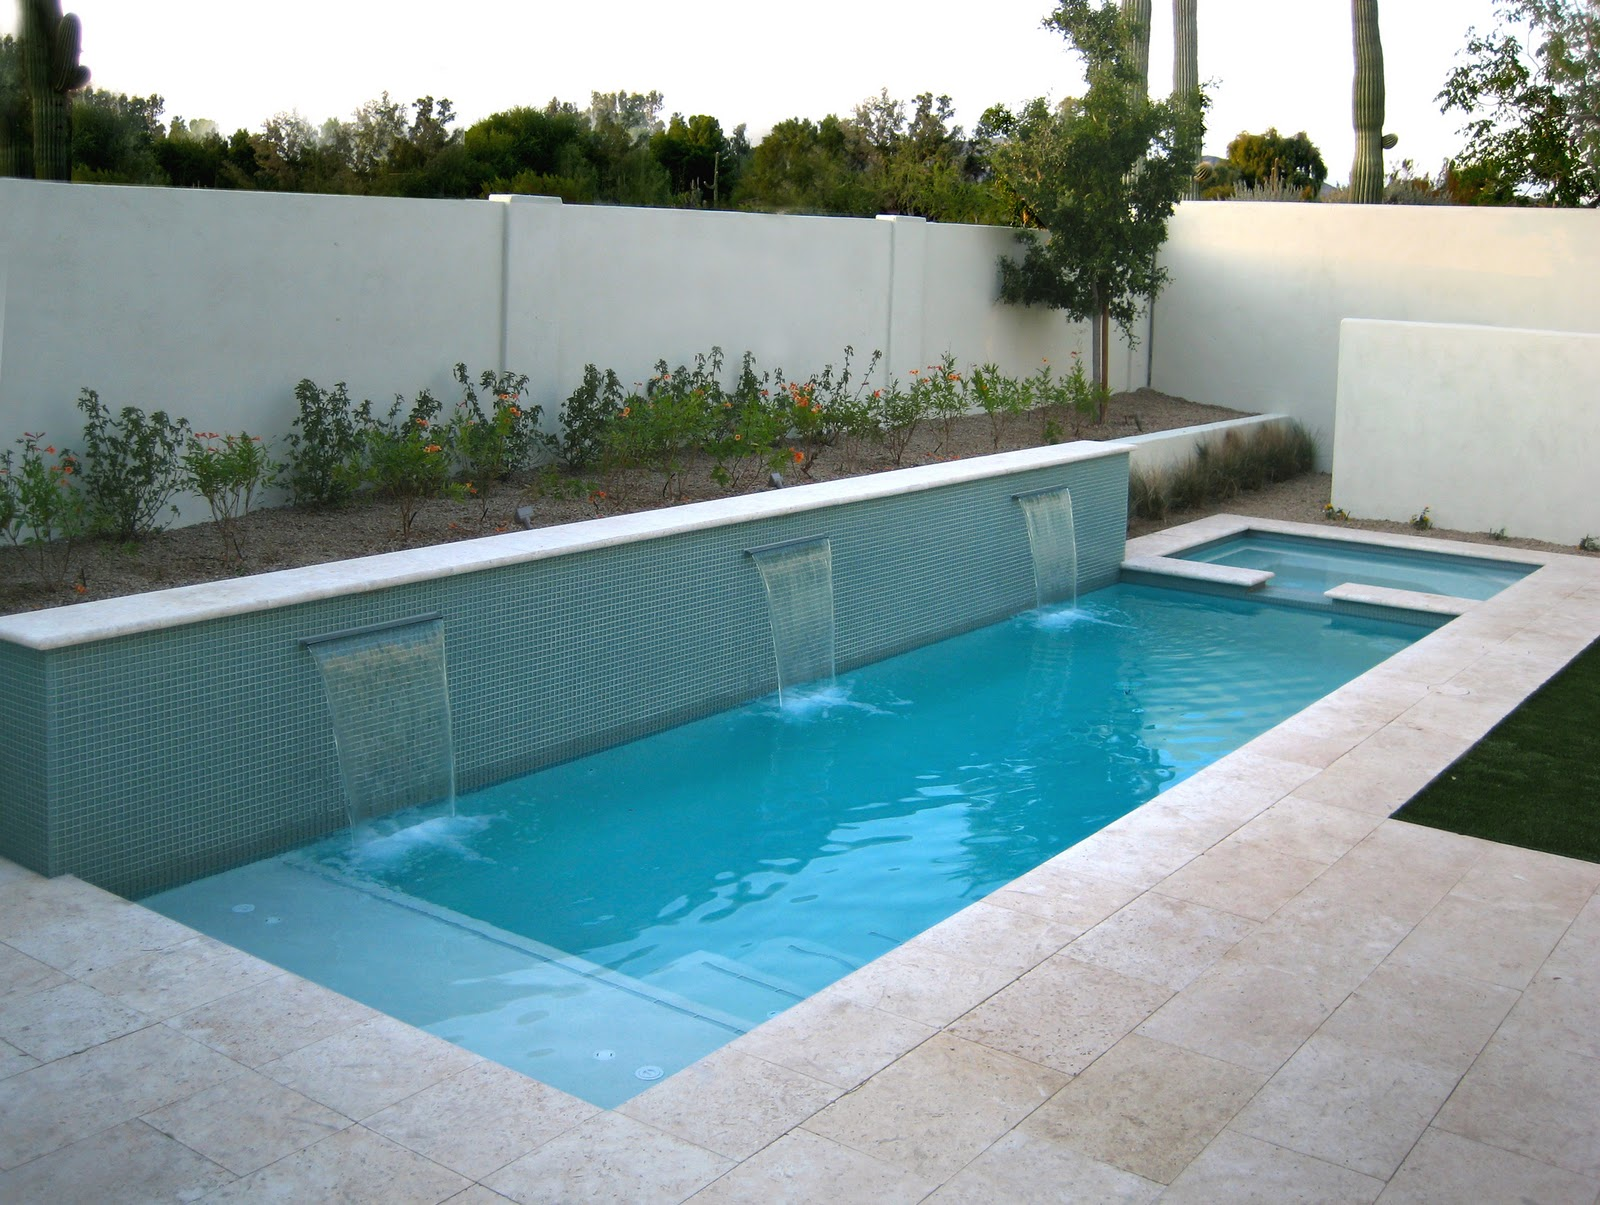 Swimming pools in small spaces alpentile glass tile - Swimming pool designs galleries ...